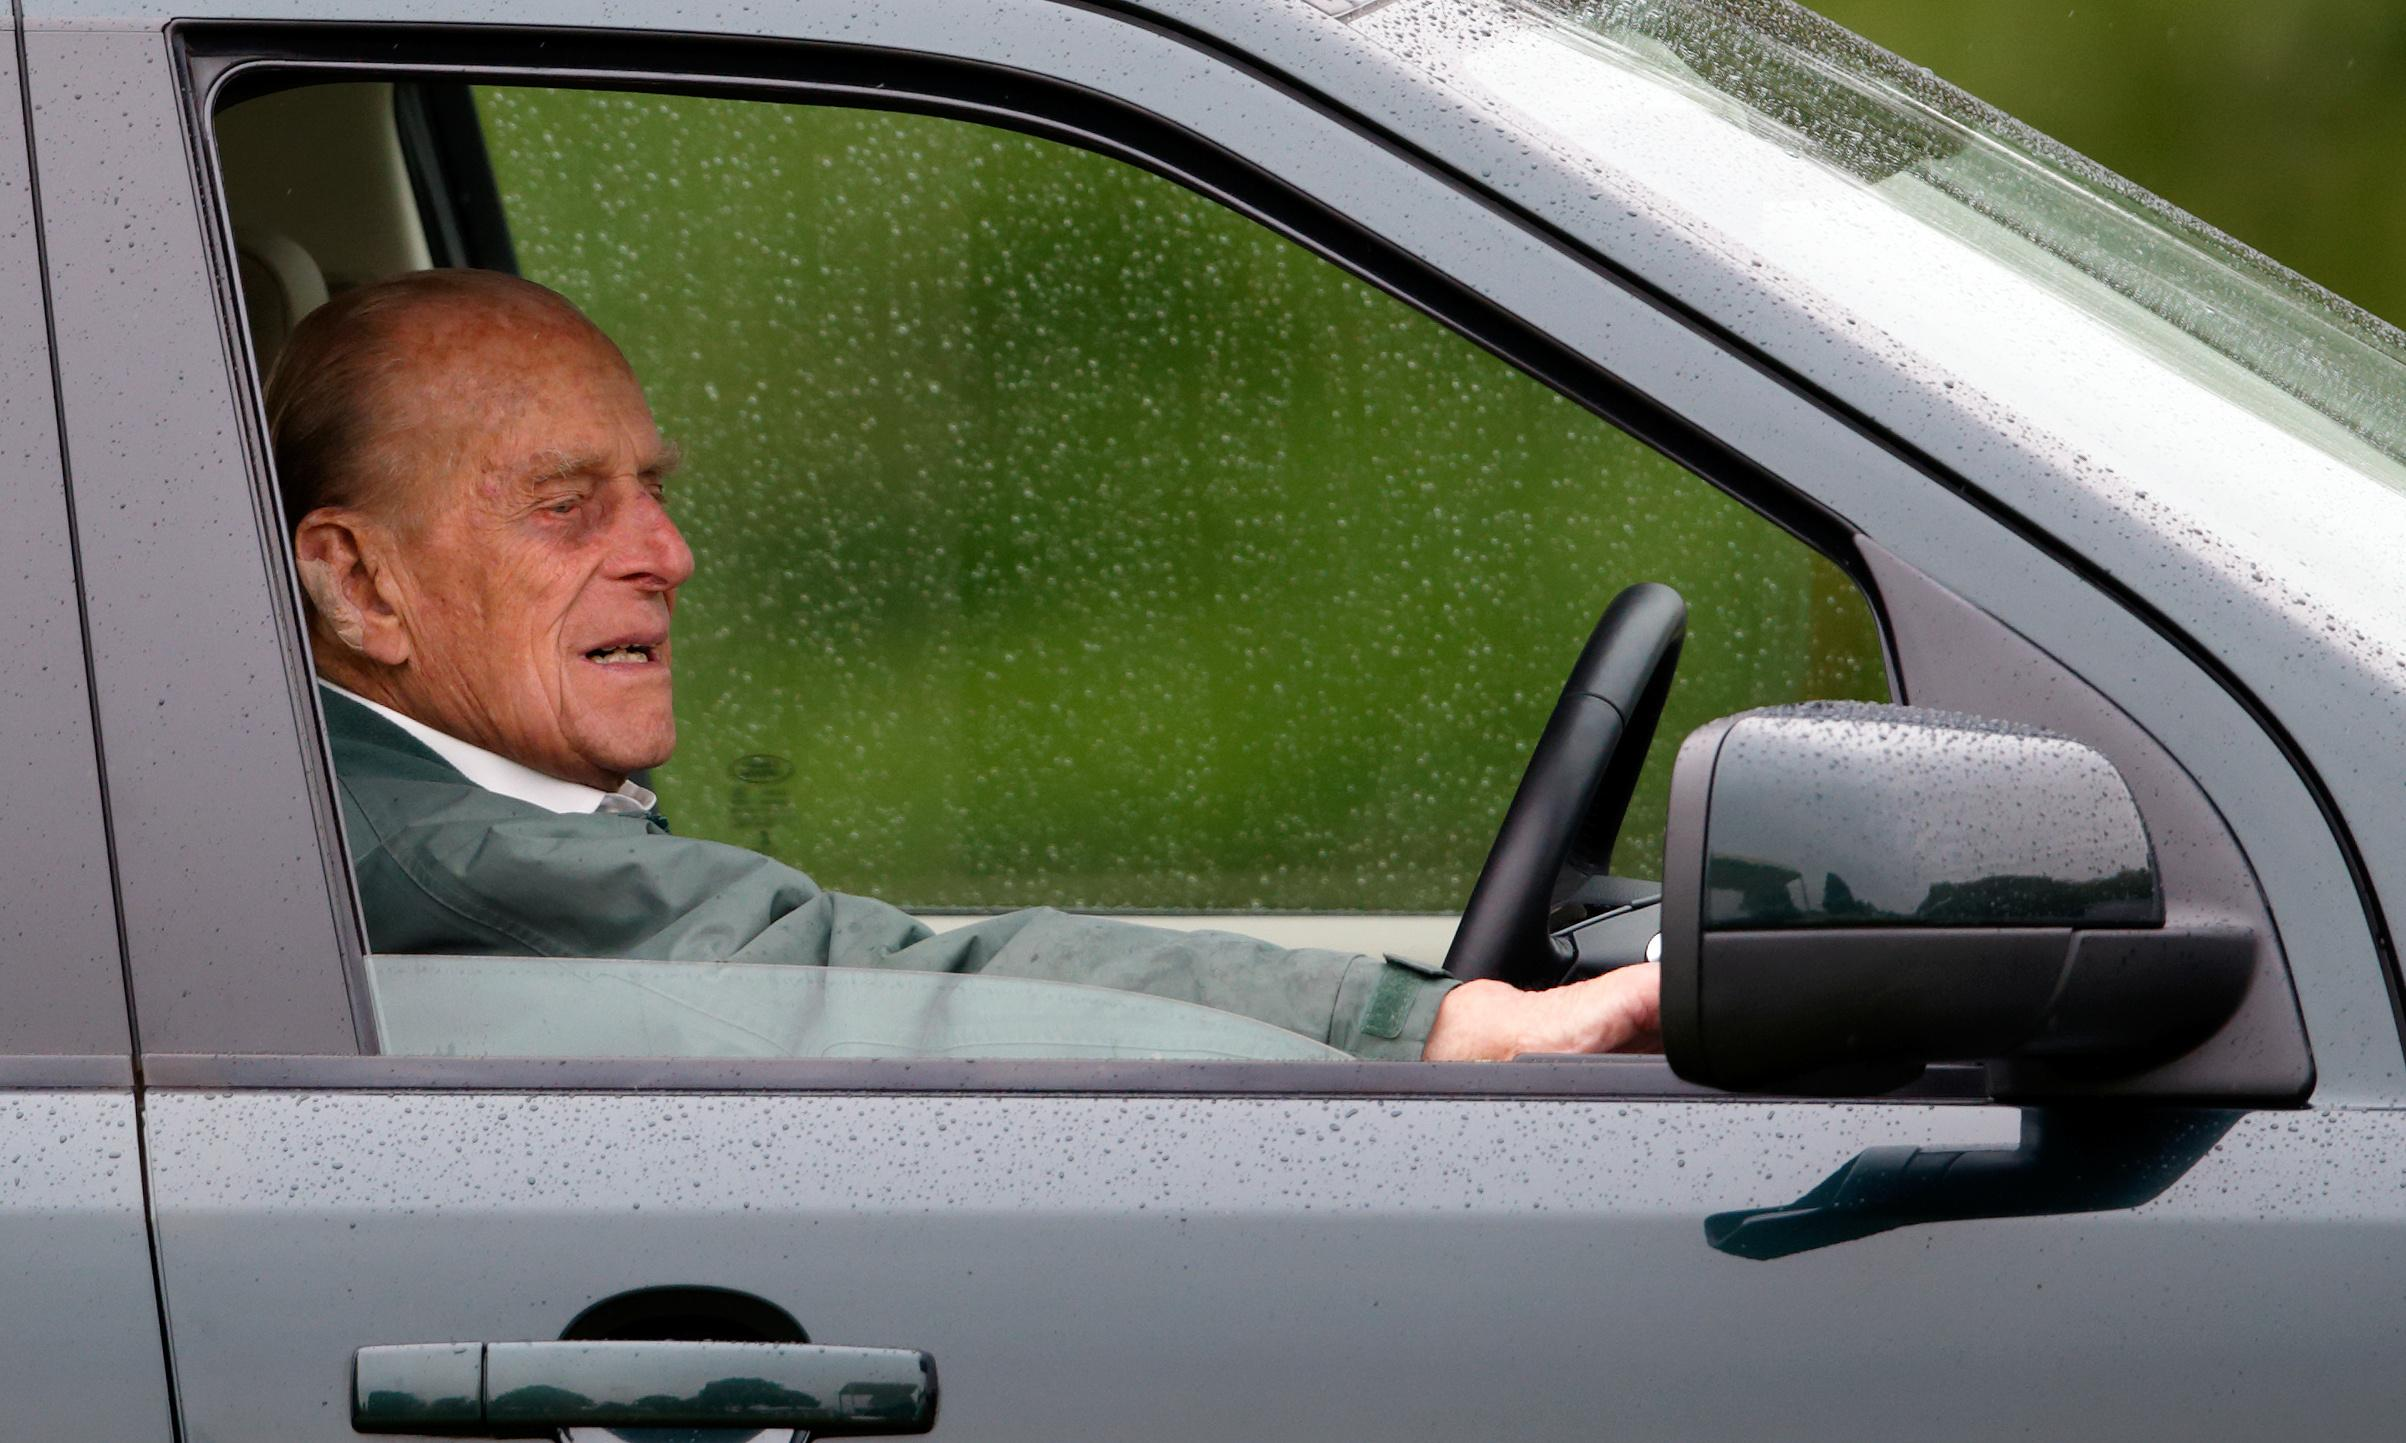 Elderly drivers: when is it time to hand over the car keys?